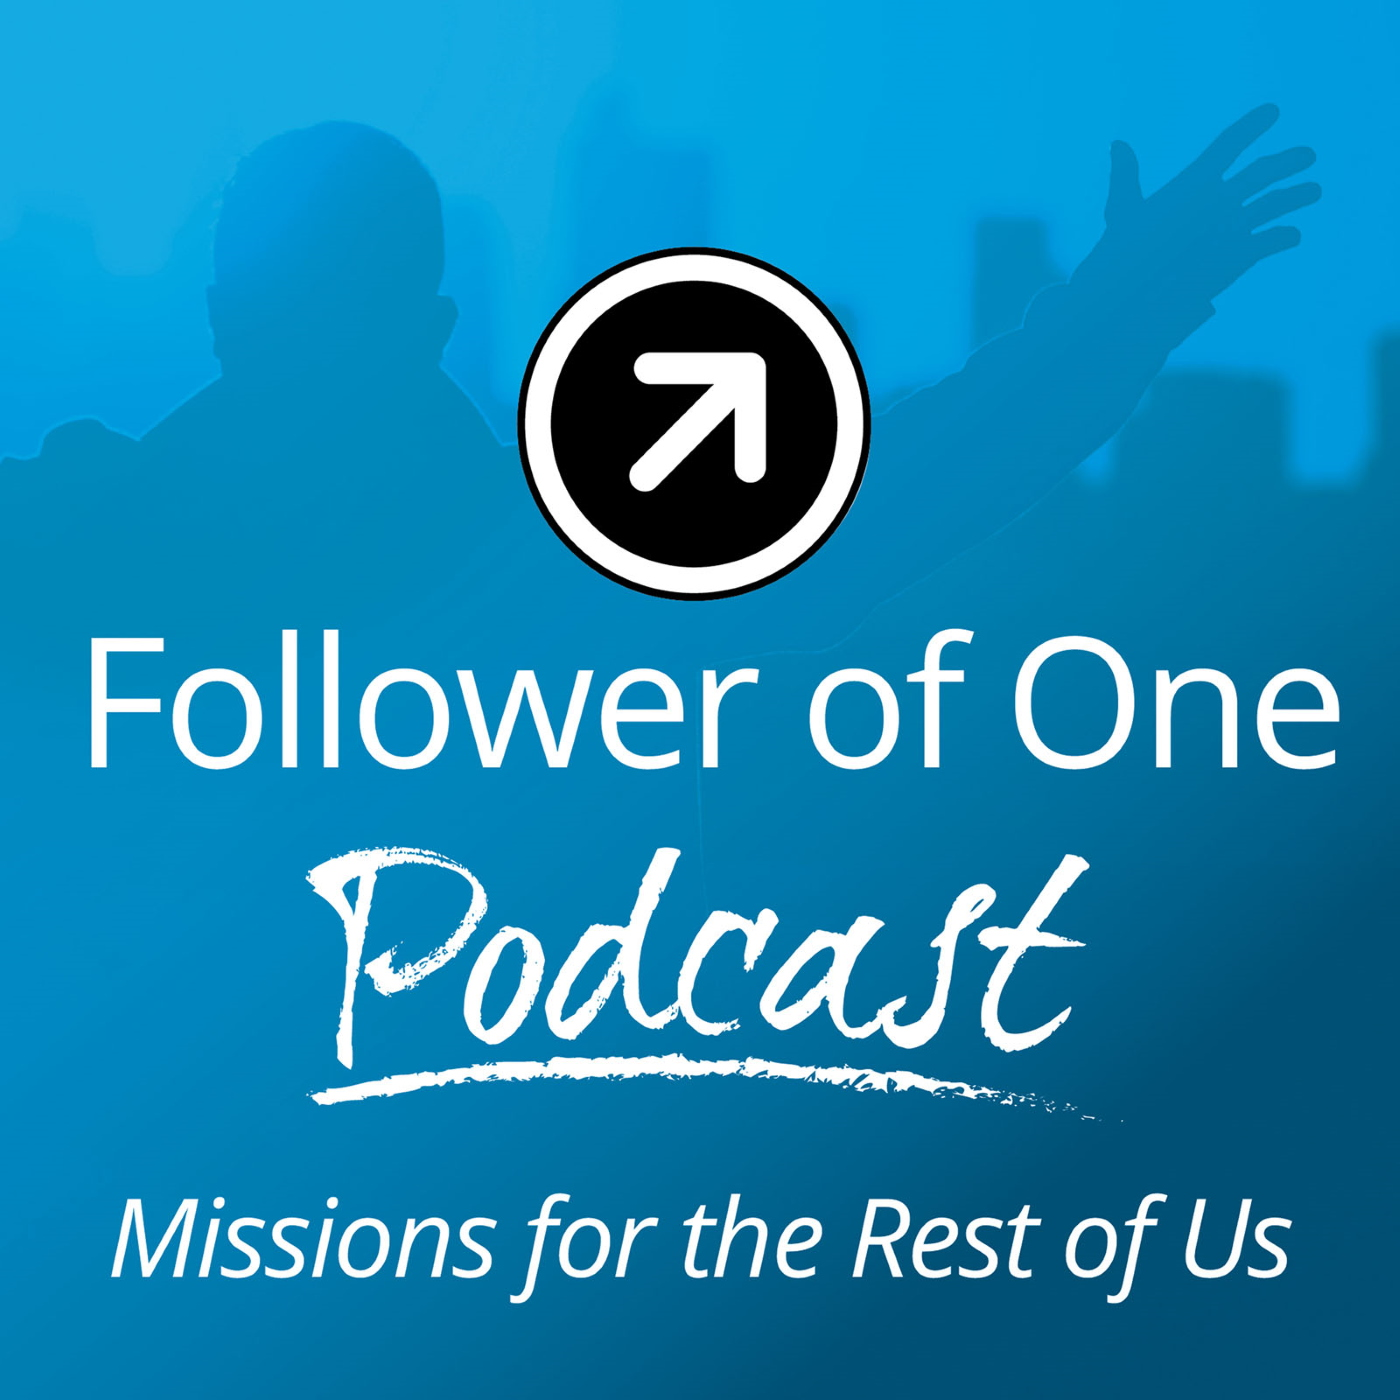 Follower of One : Missions For The Rest Of Us podcast show image